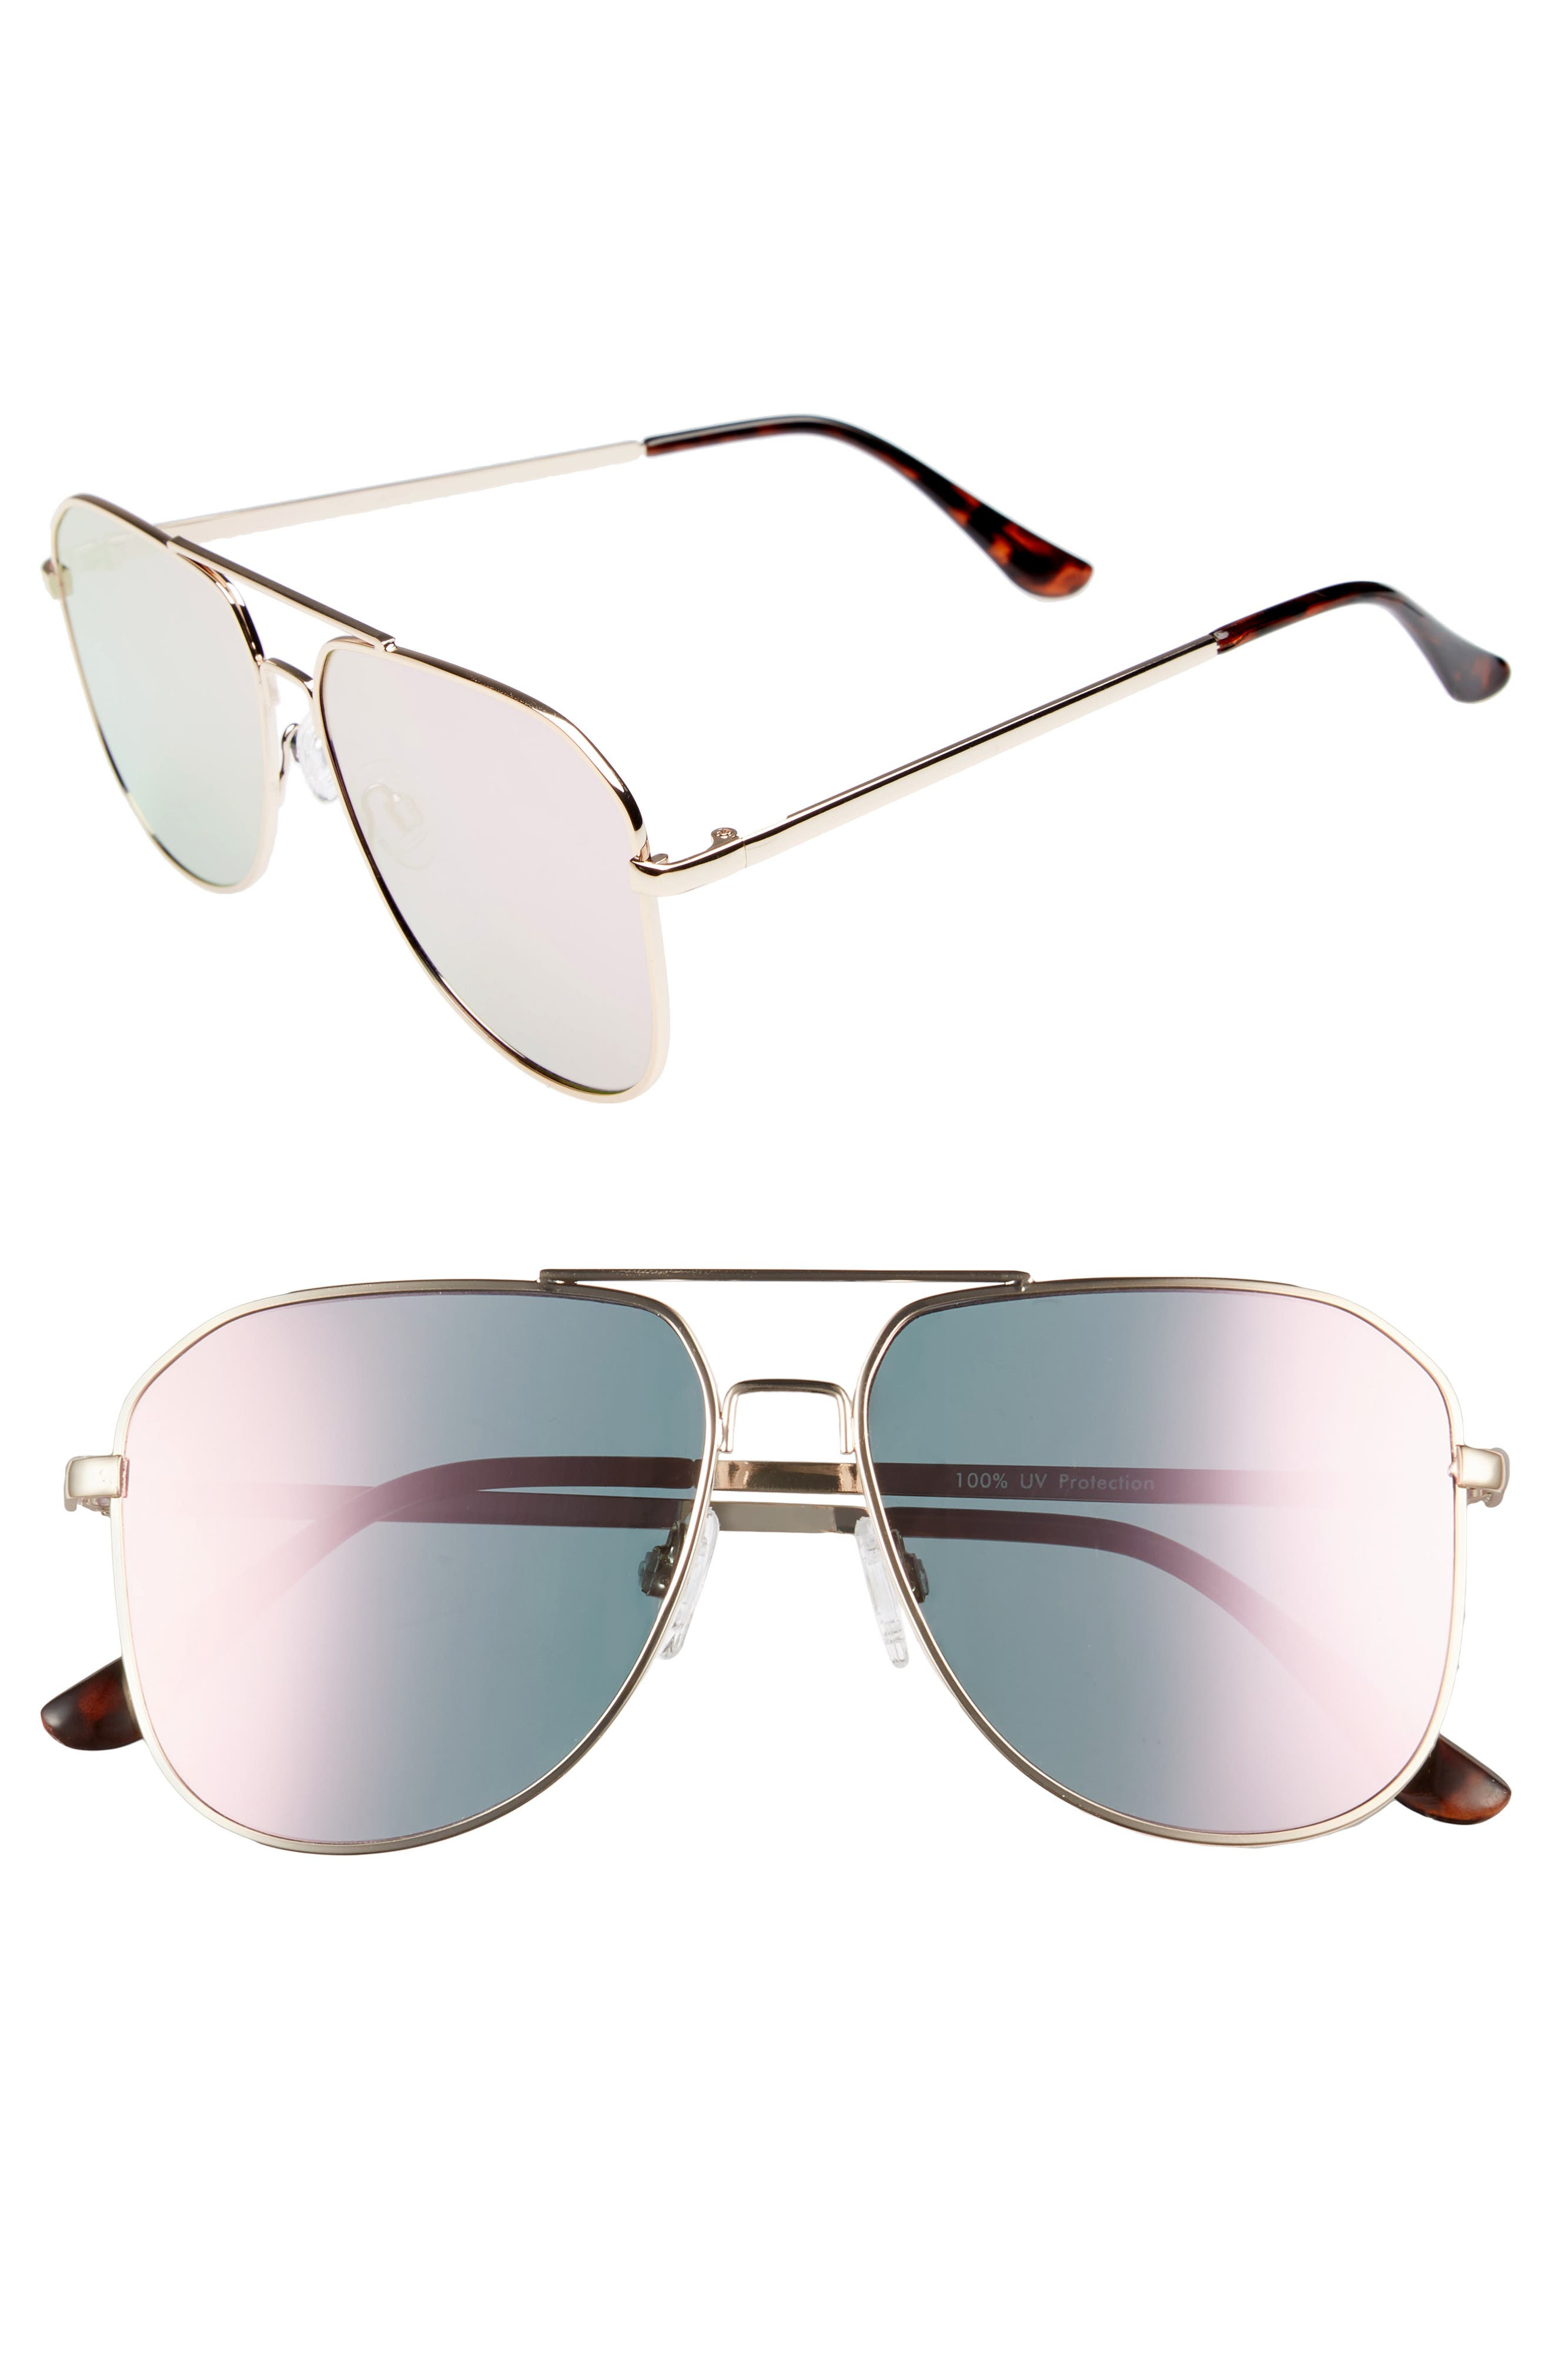 54mm Aviator Sunglasses,                         Main,                         color, Gold/ Pink